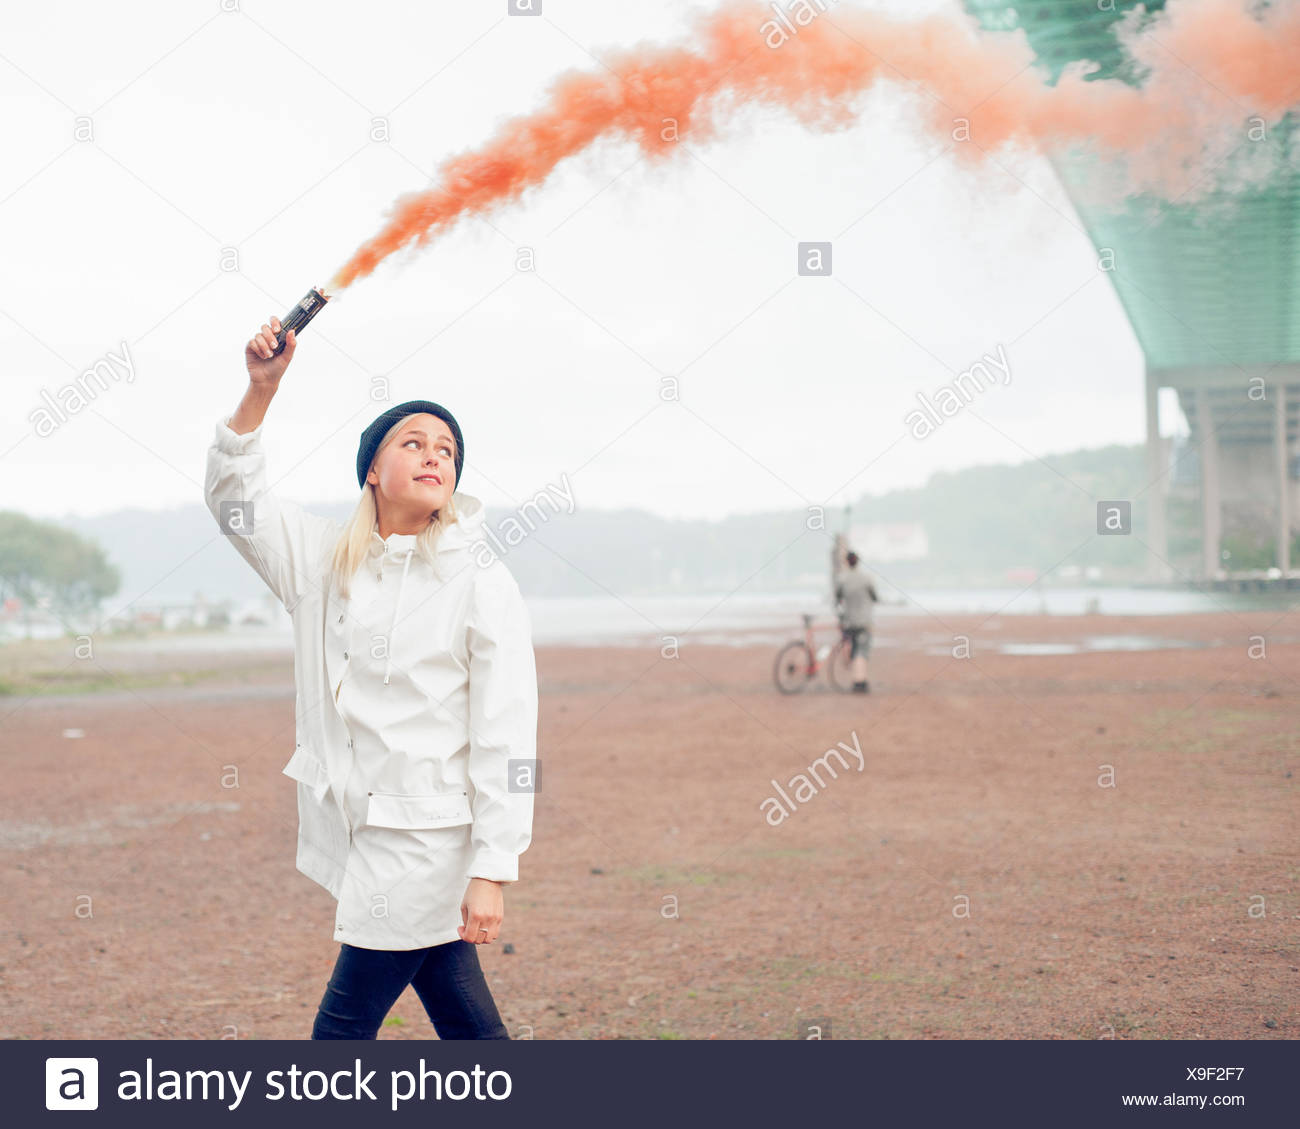 Sweden, Vastra Gotaland, Gothenburg, Young woman walking with distress flare Stock Photo